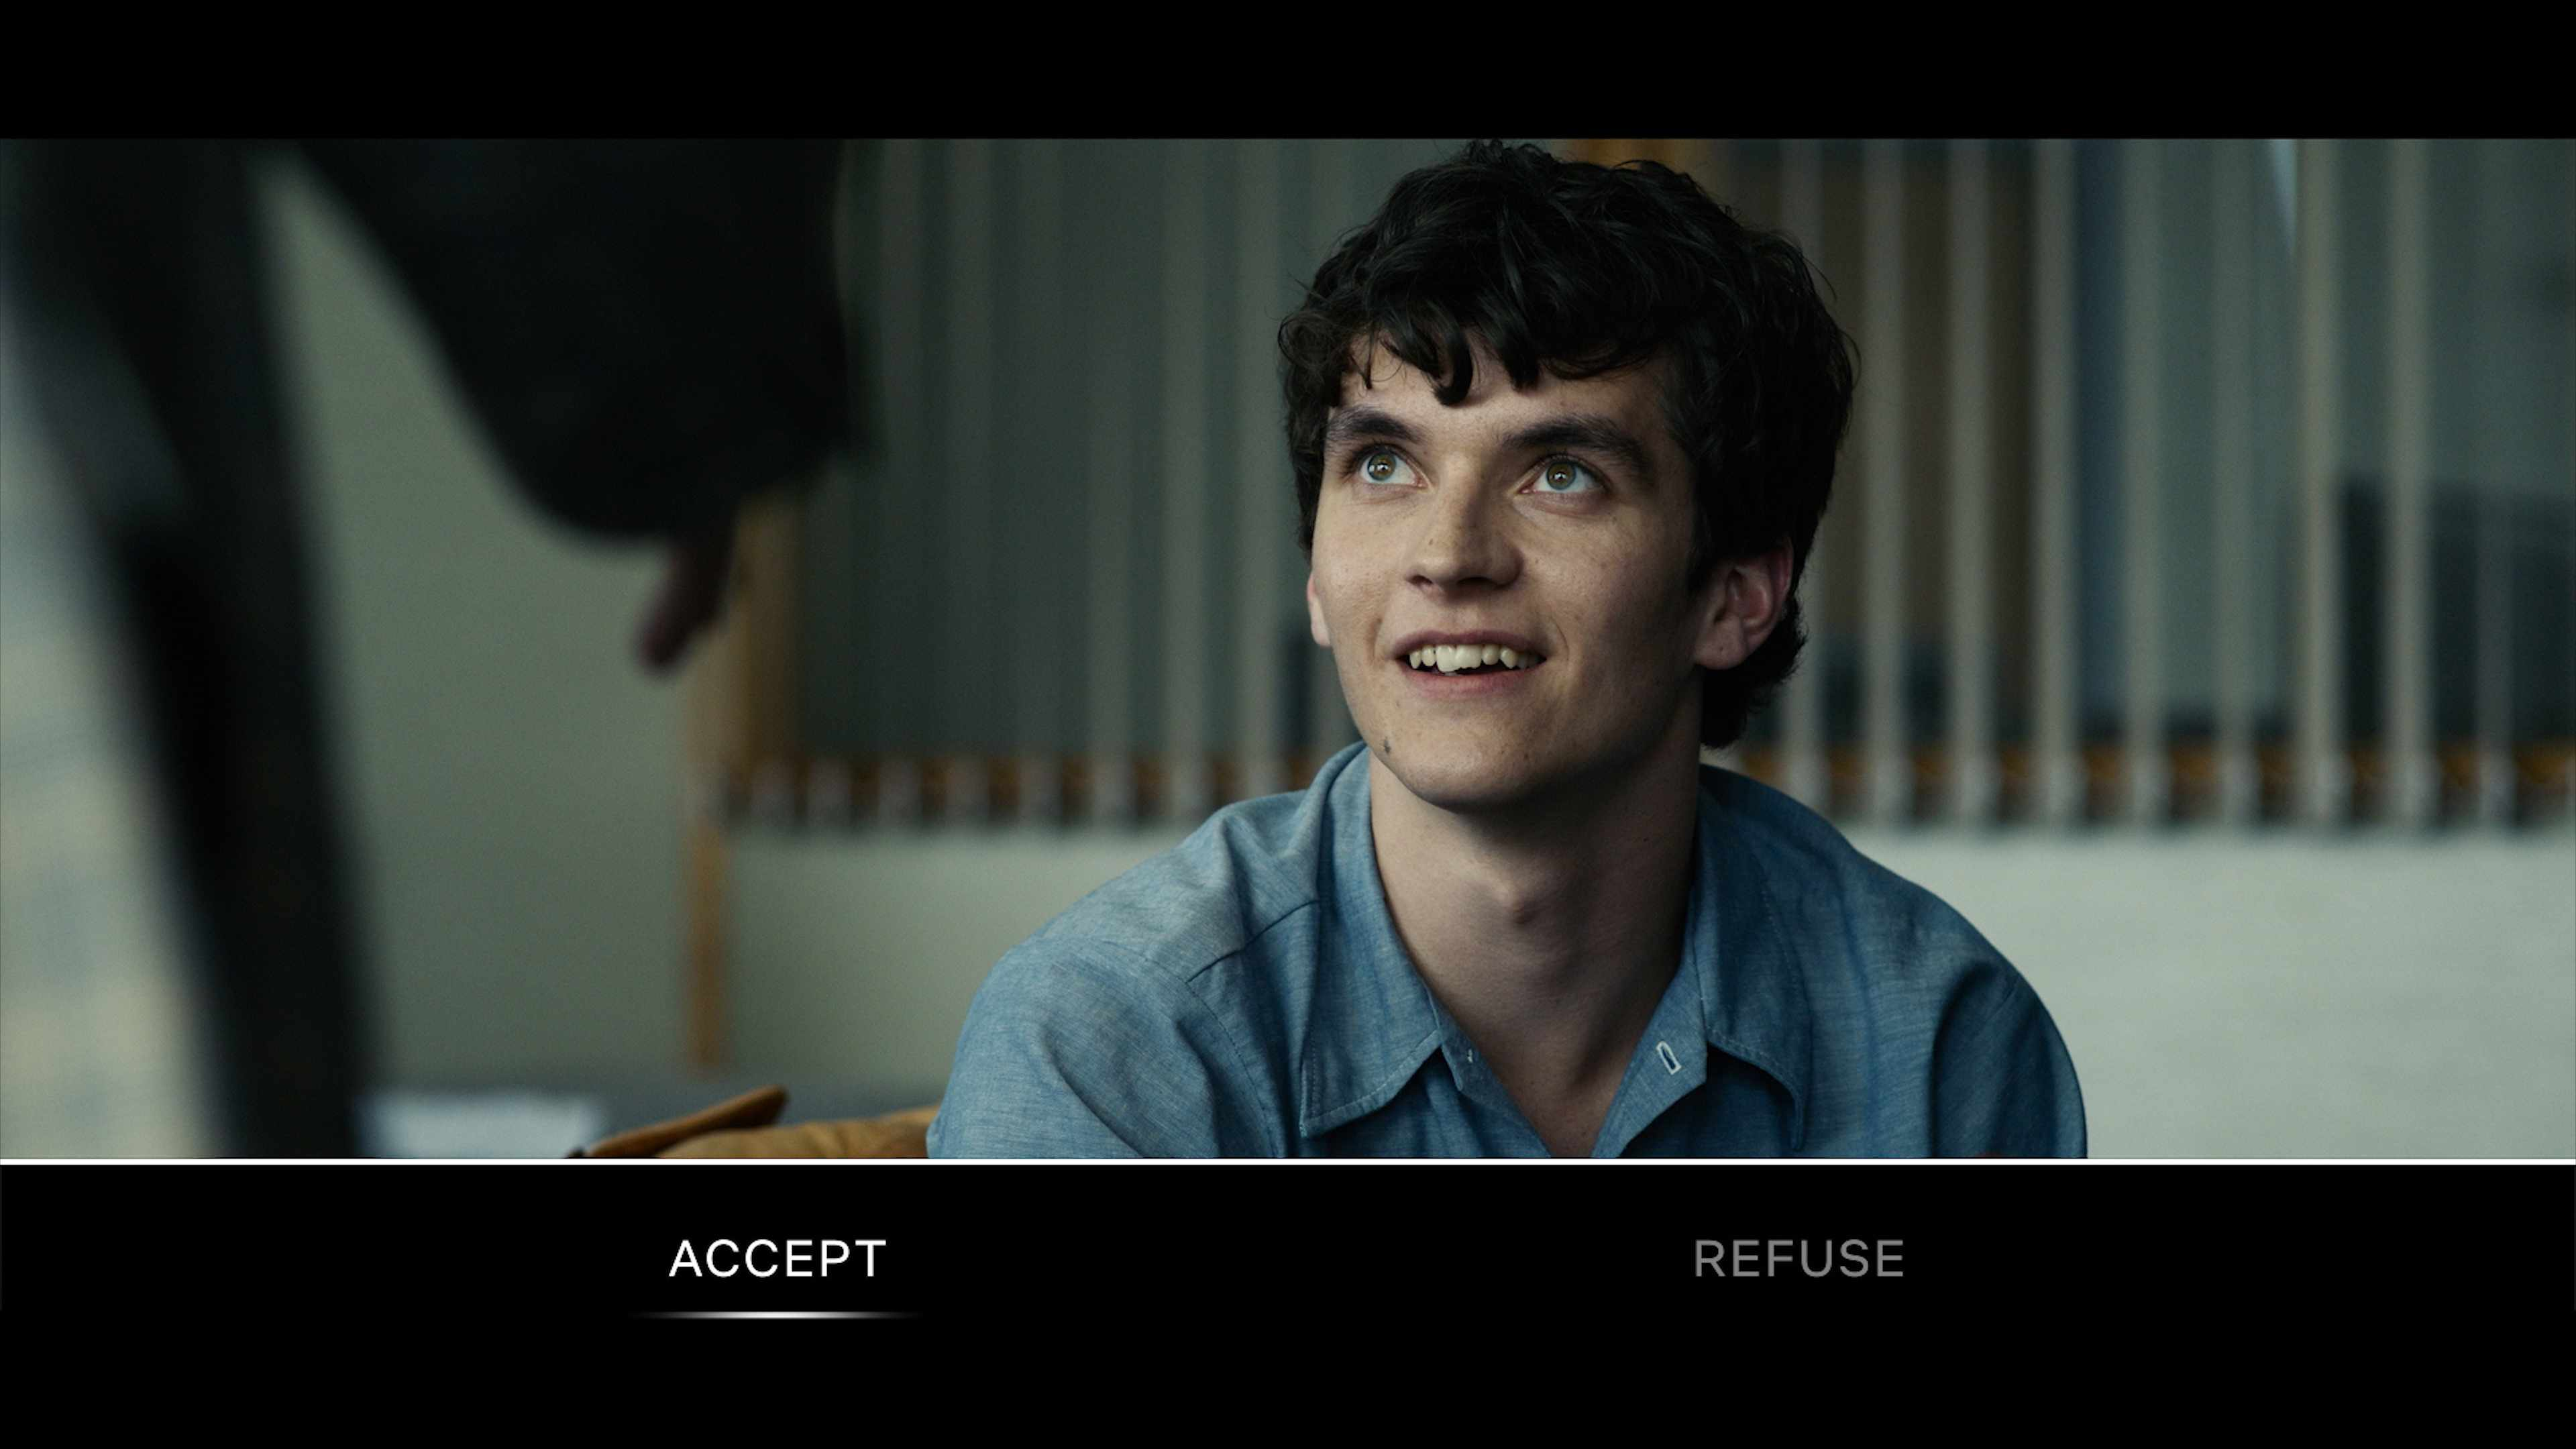 """Pictured - Fionn Whitehead during one of Bandersnatch's """"choice points"""""""